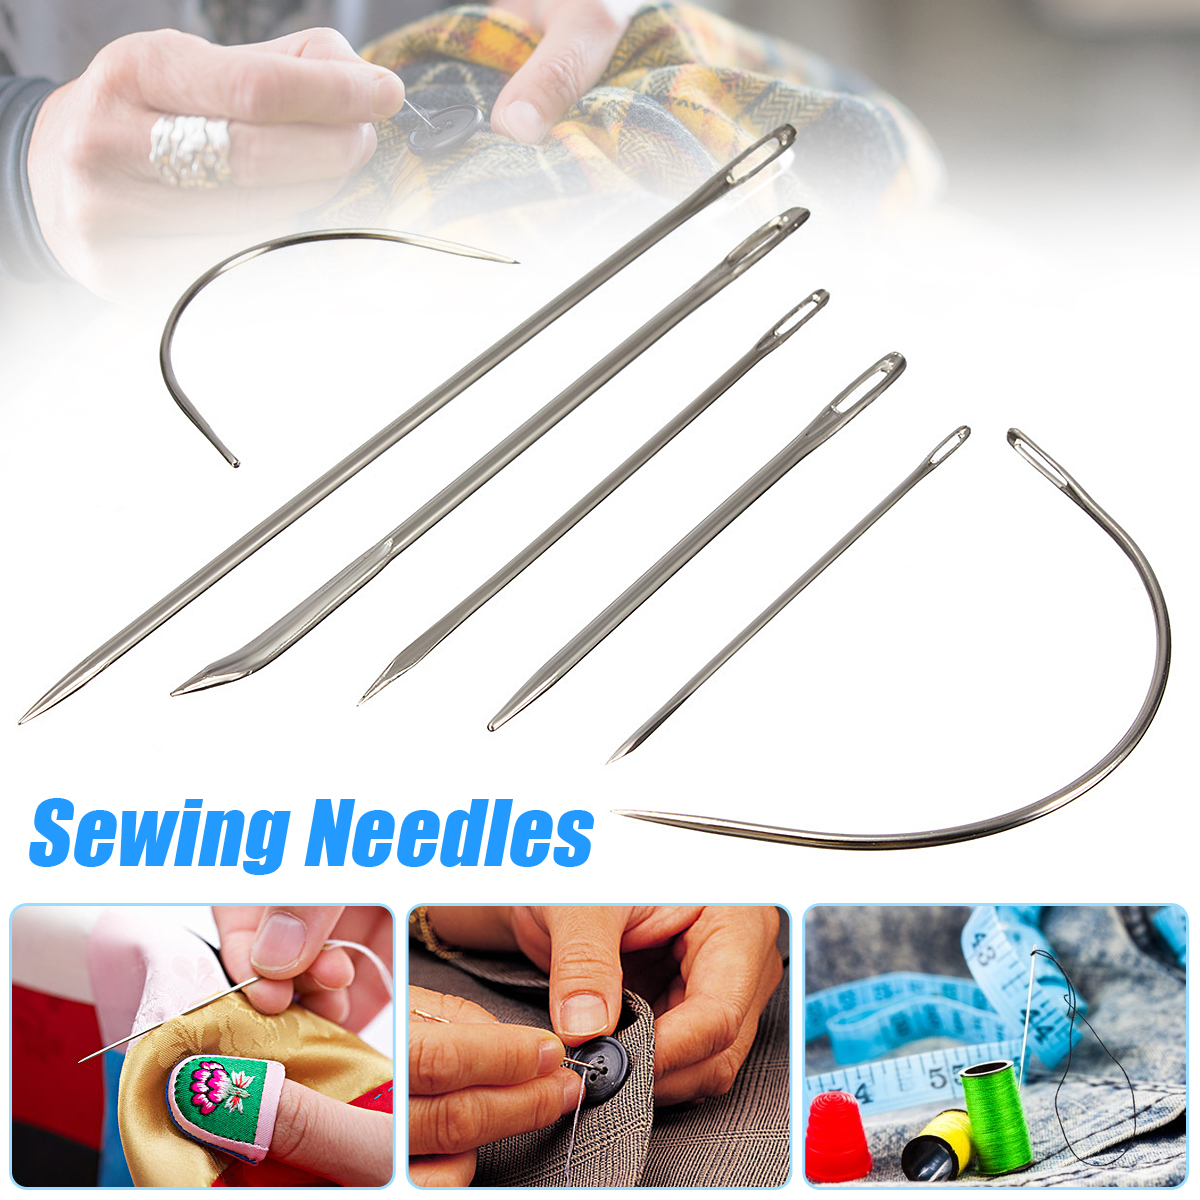 3 Pack Repair Curved Hand Sewing Needles Kit Tool For DIY Upholstery Carpet Leather Canvas